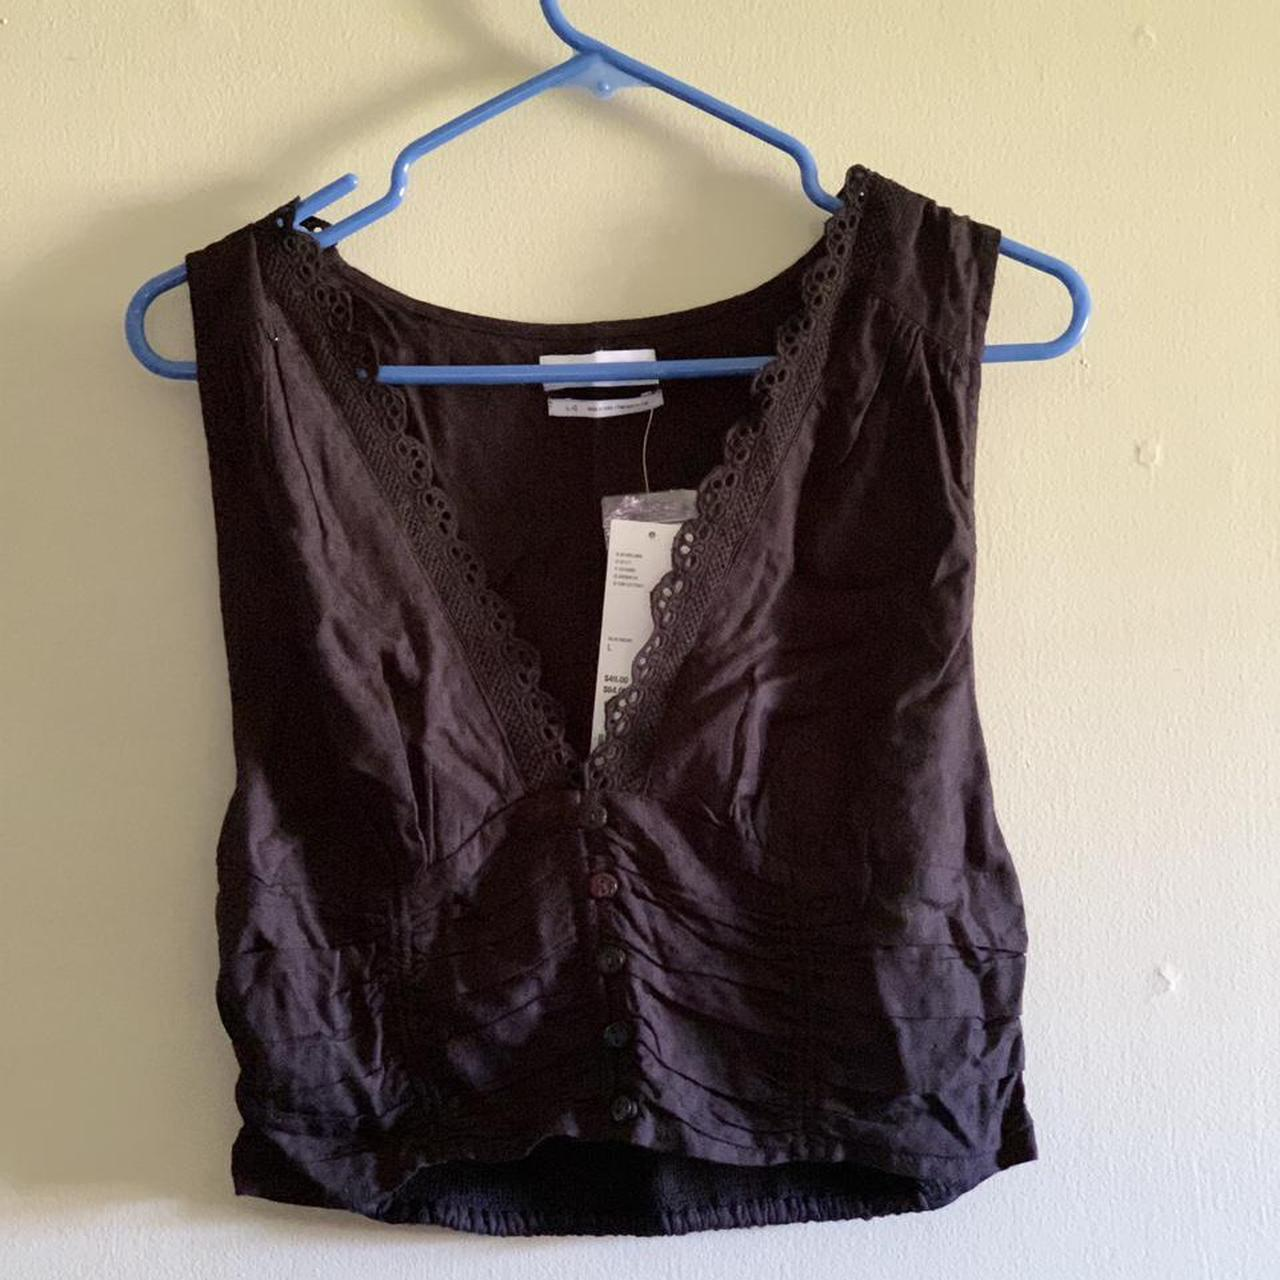 Product Image 1 - urban outfitters cropped sleeveless top,